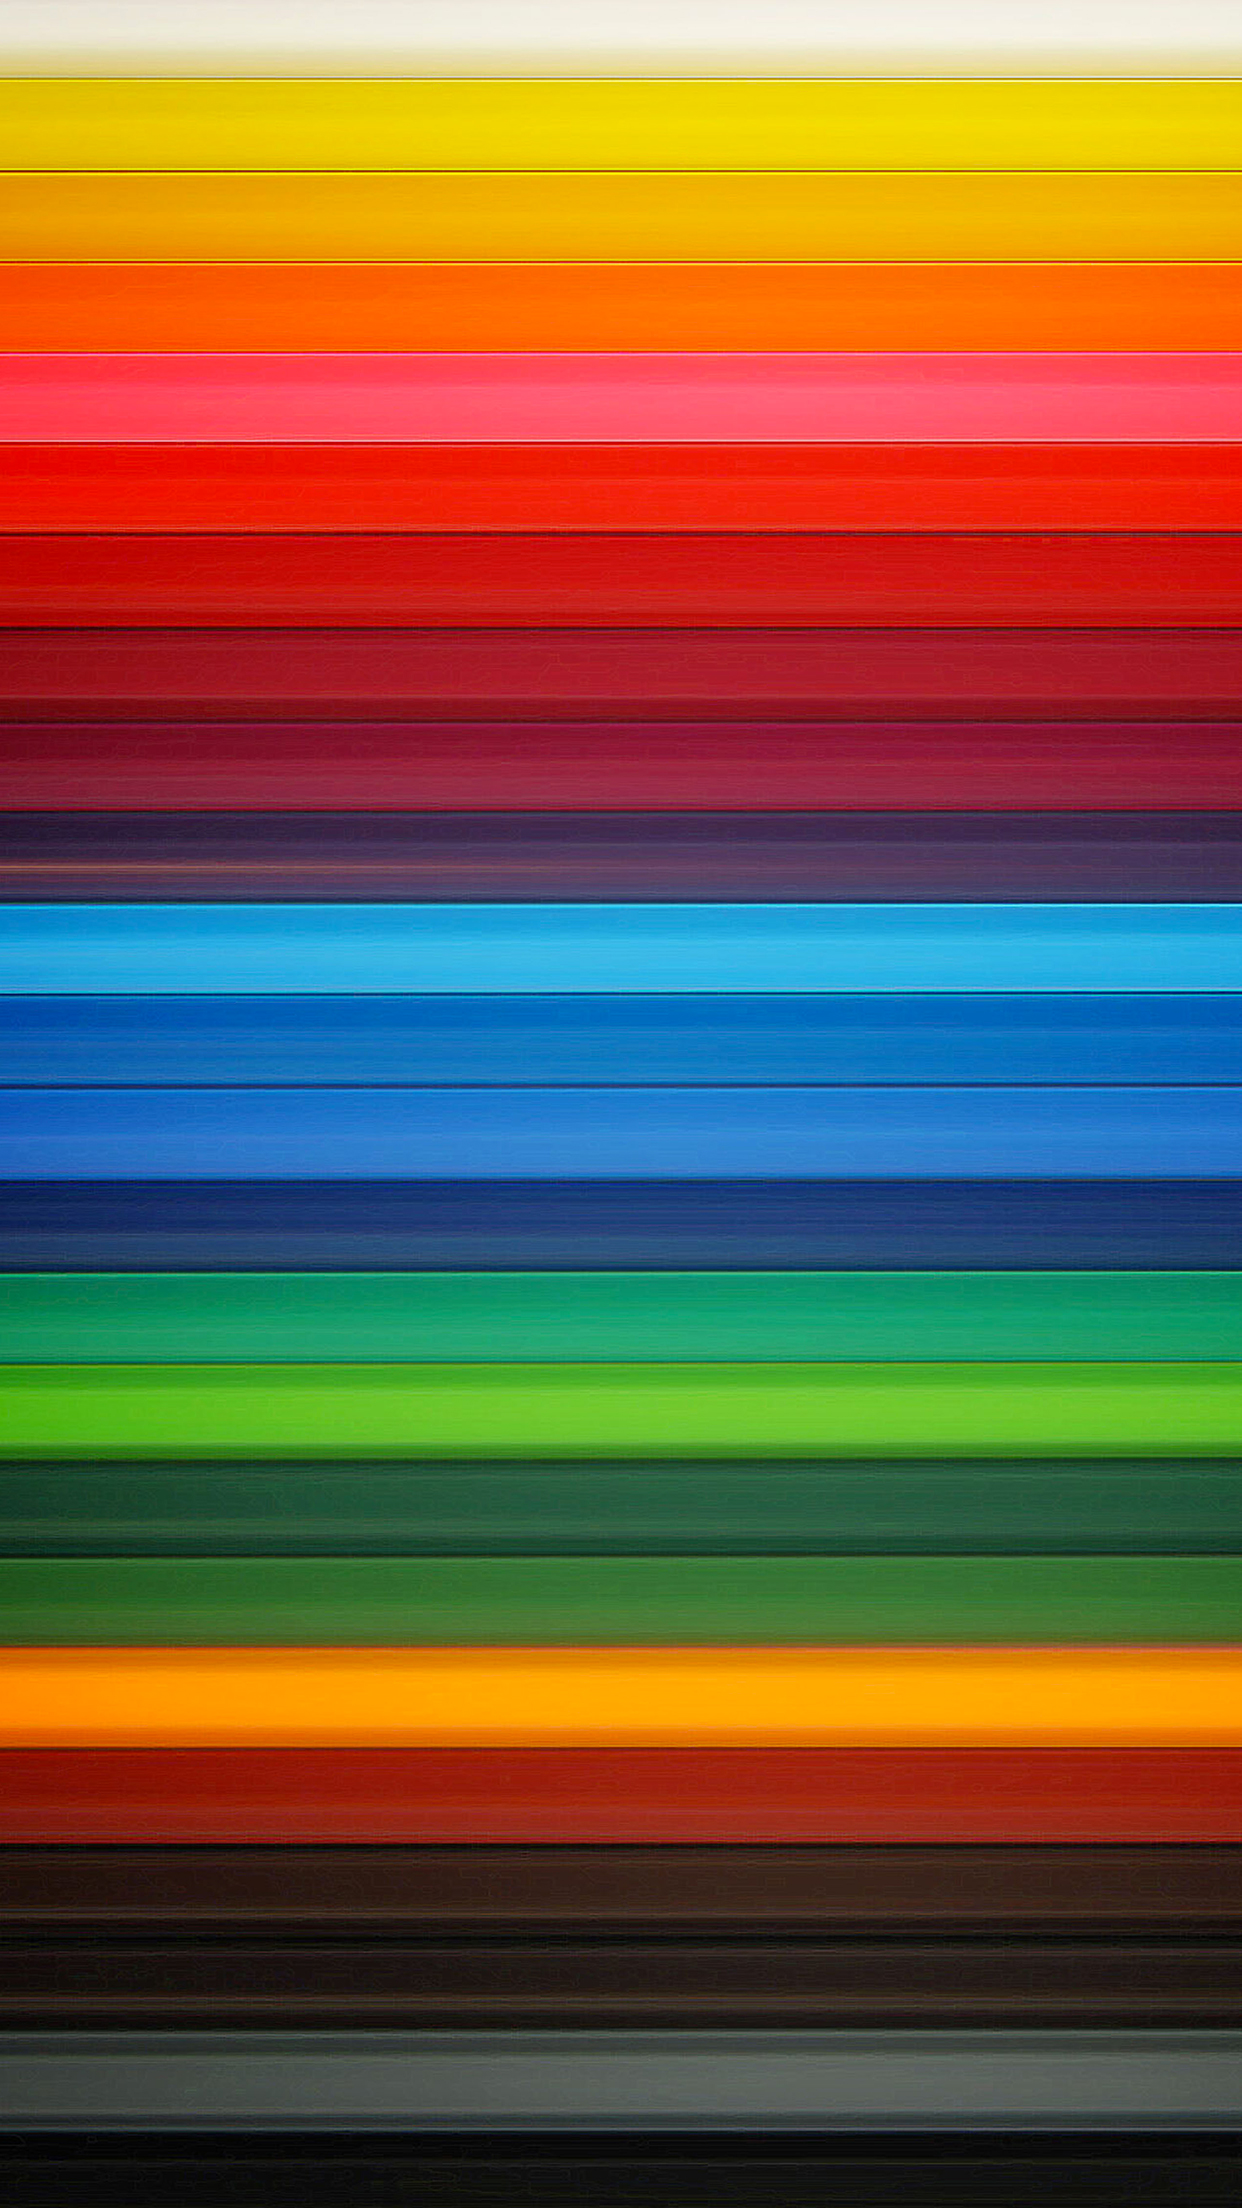 Abstract Colorful Lines iPhone 3Wallpapers Parallax Abstract Colorful Lines